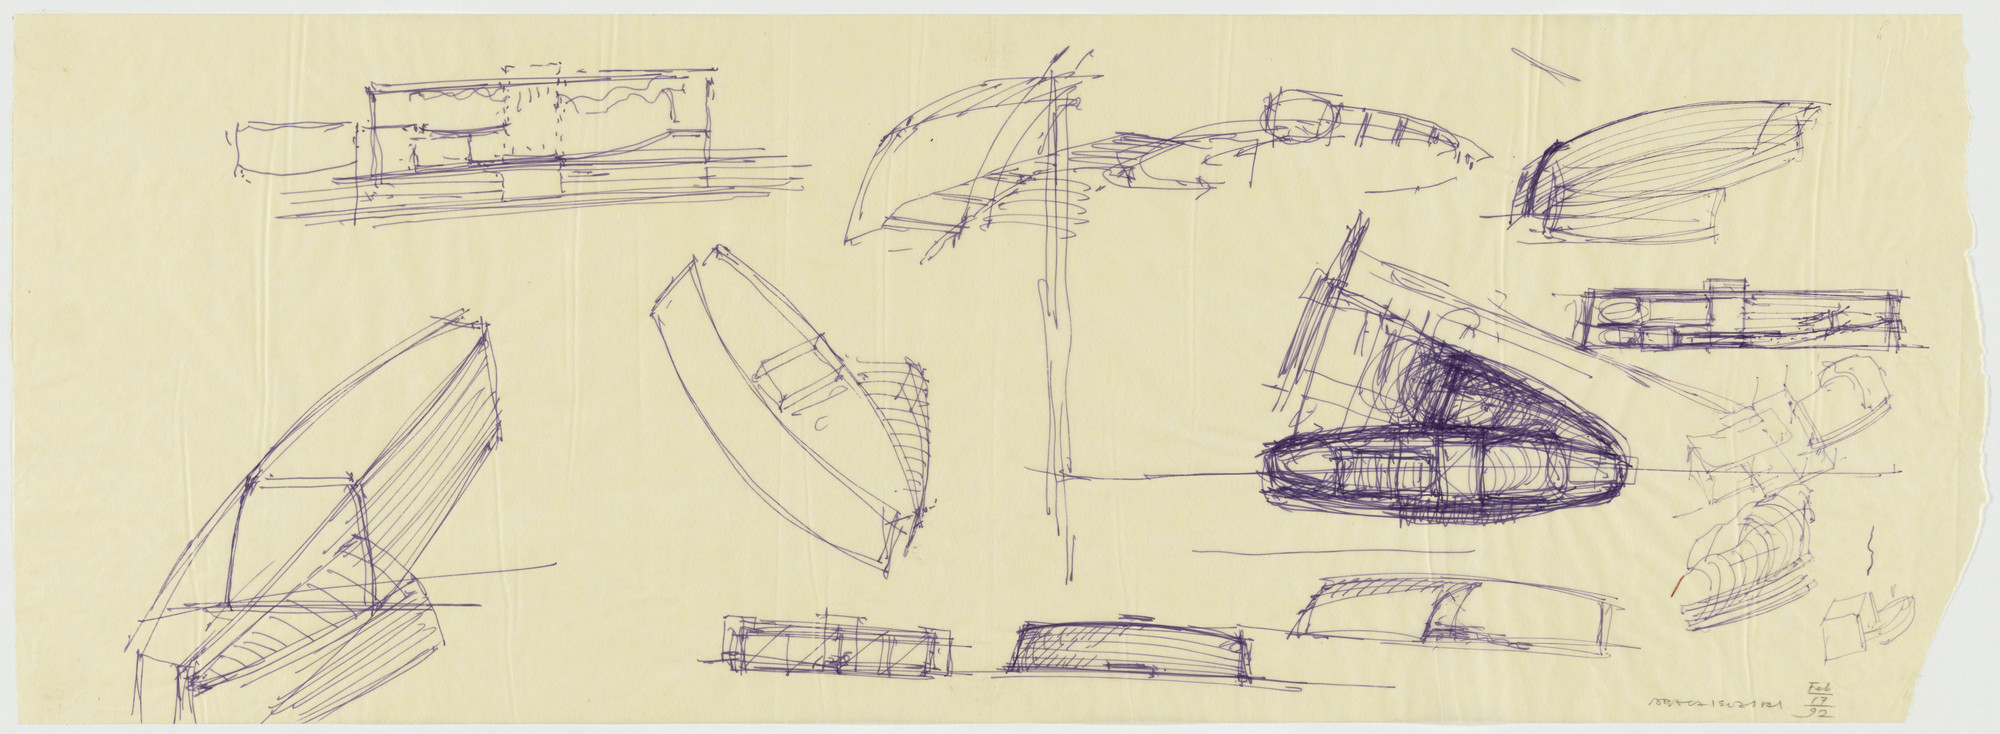 Arata Isozaki. Nara Convention Hall, Nara, Japan, Preliminary sketches. 1992